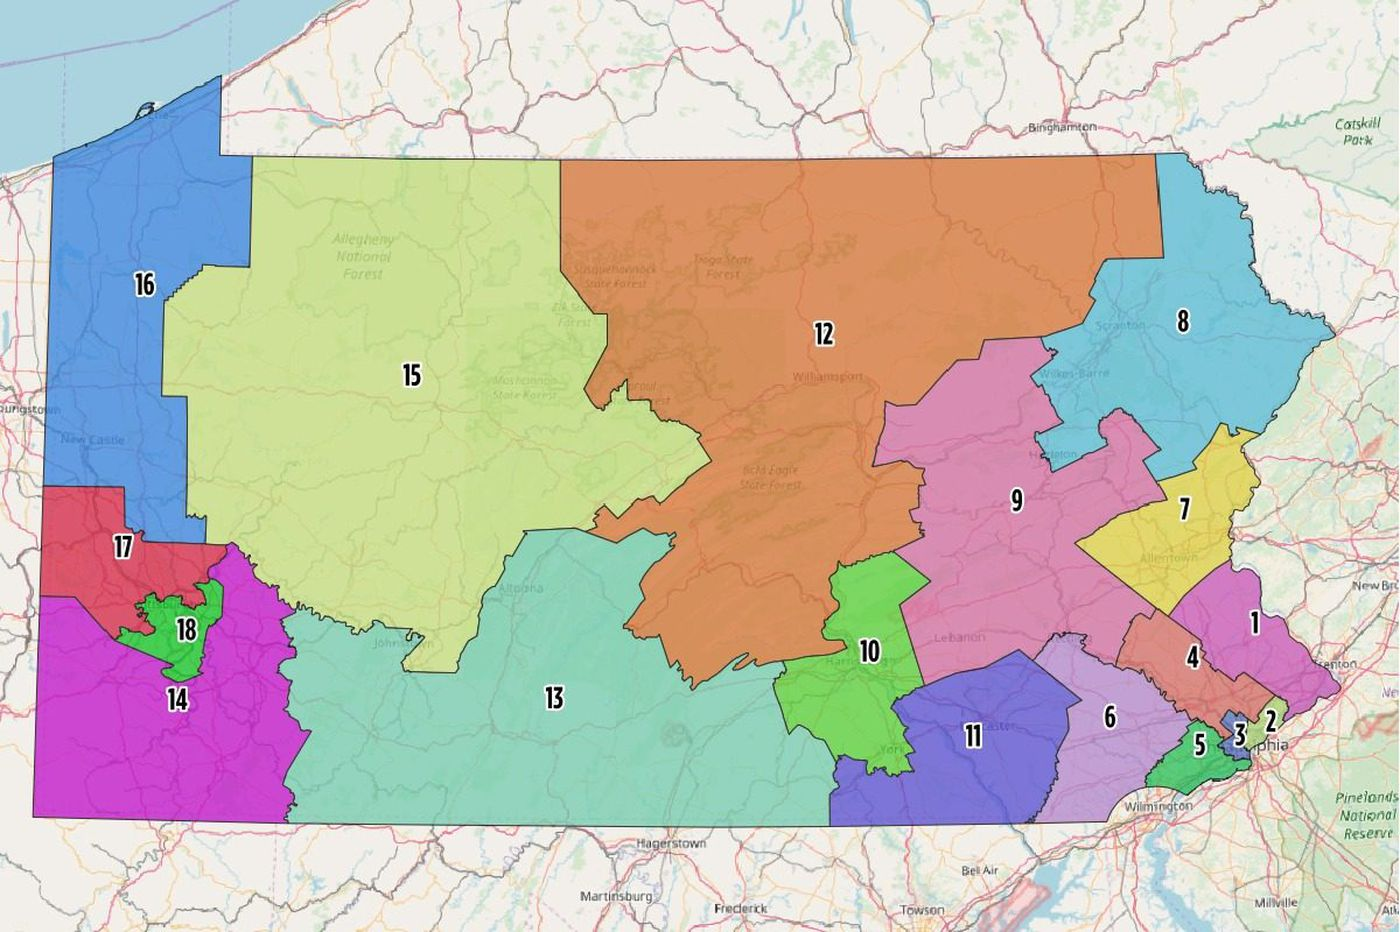 Pa. gerrymandering case: State Supreme Court releases new congressional map for 2018 elections